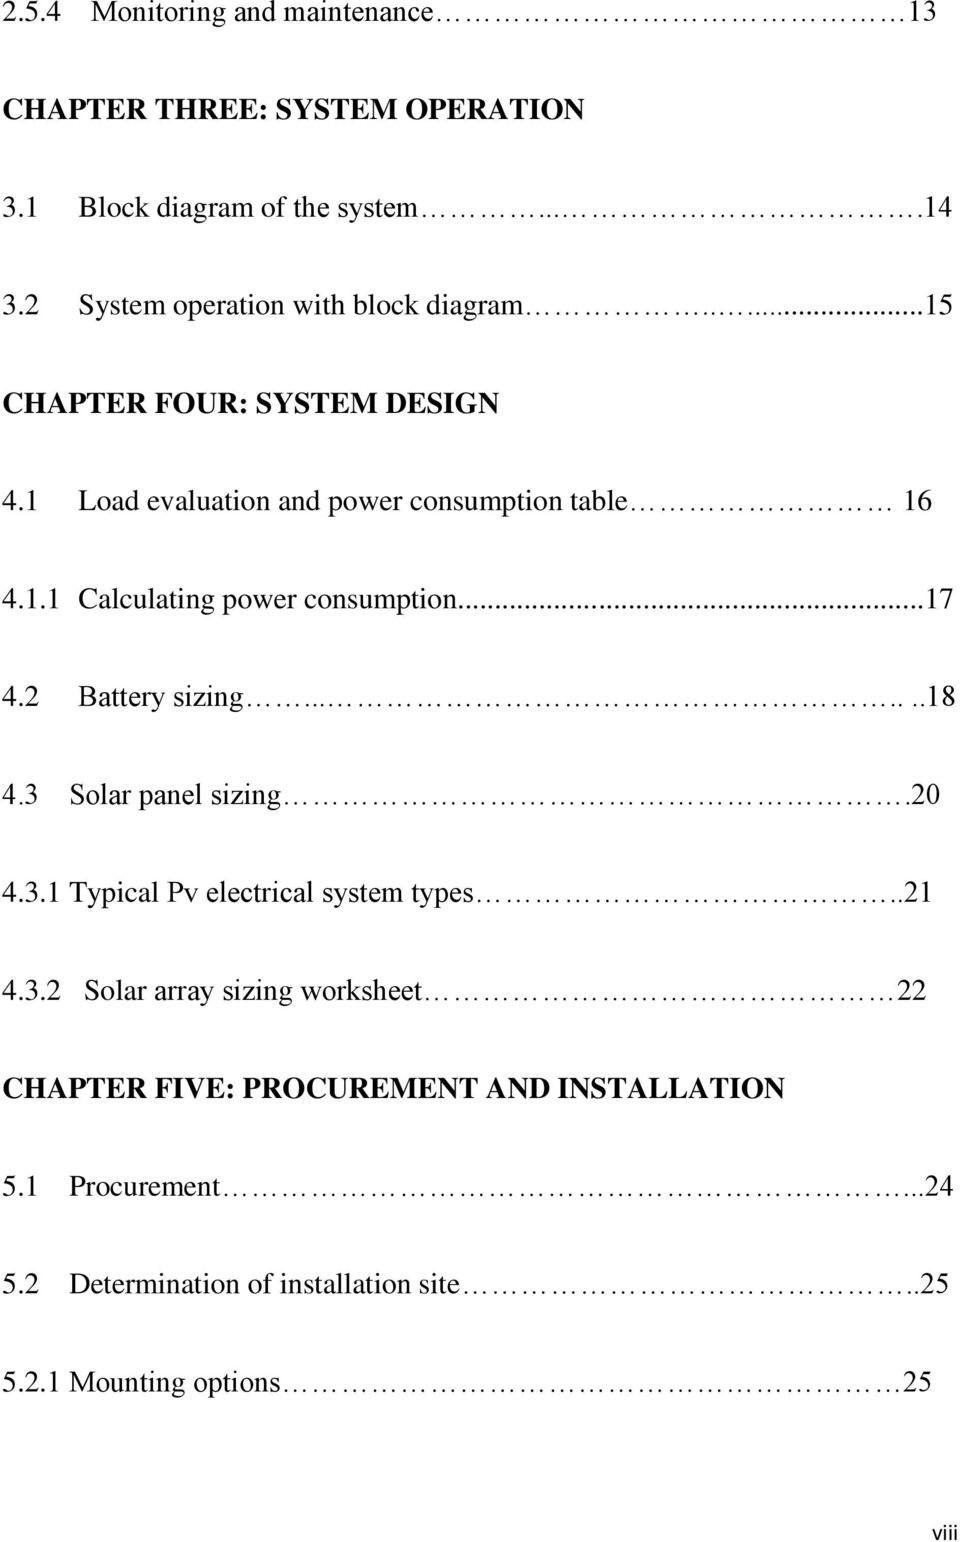 hight resolution of pv system sizing worksheet images